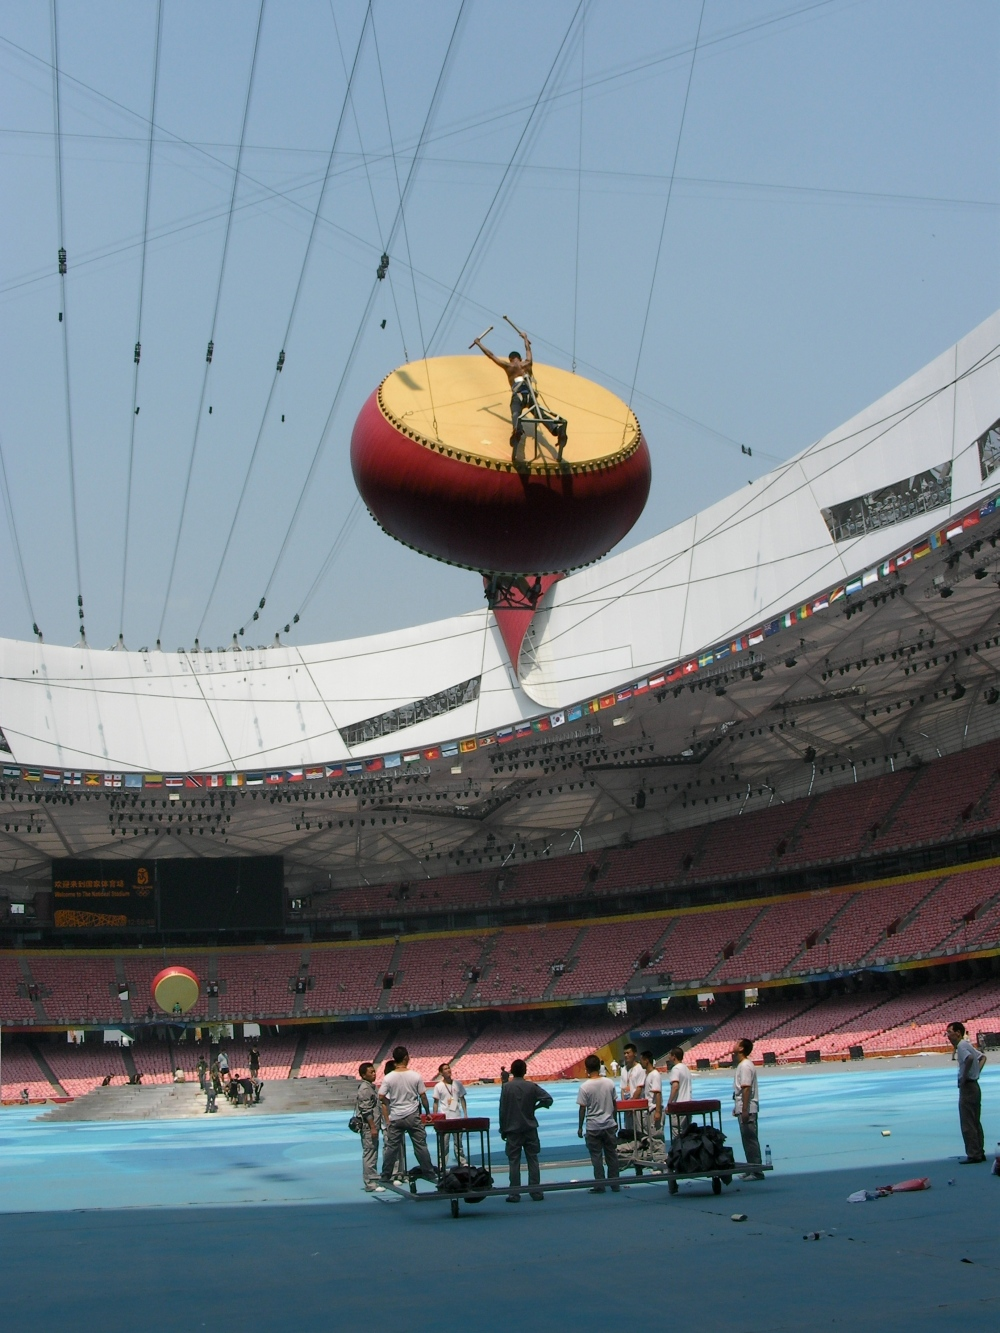 Rehearsals for the closing ceremomny of the 2008 Beijing games